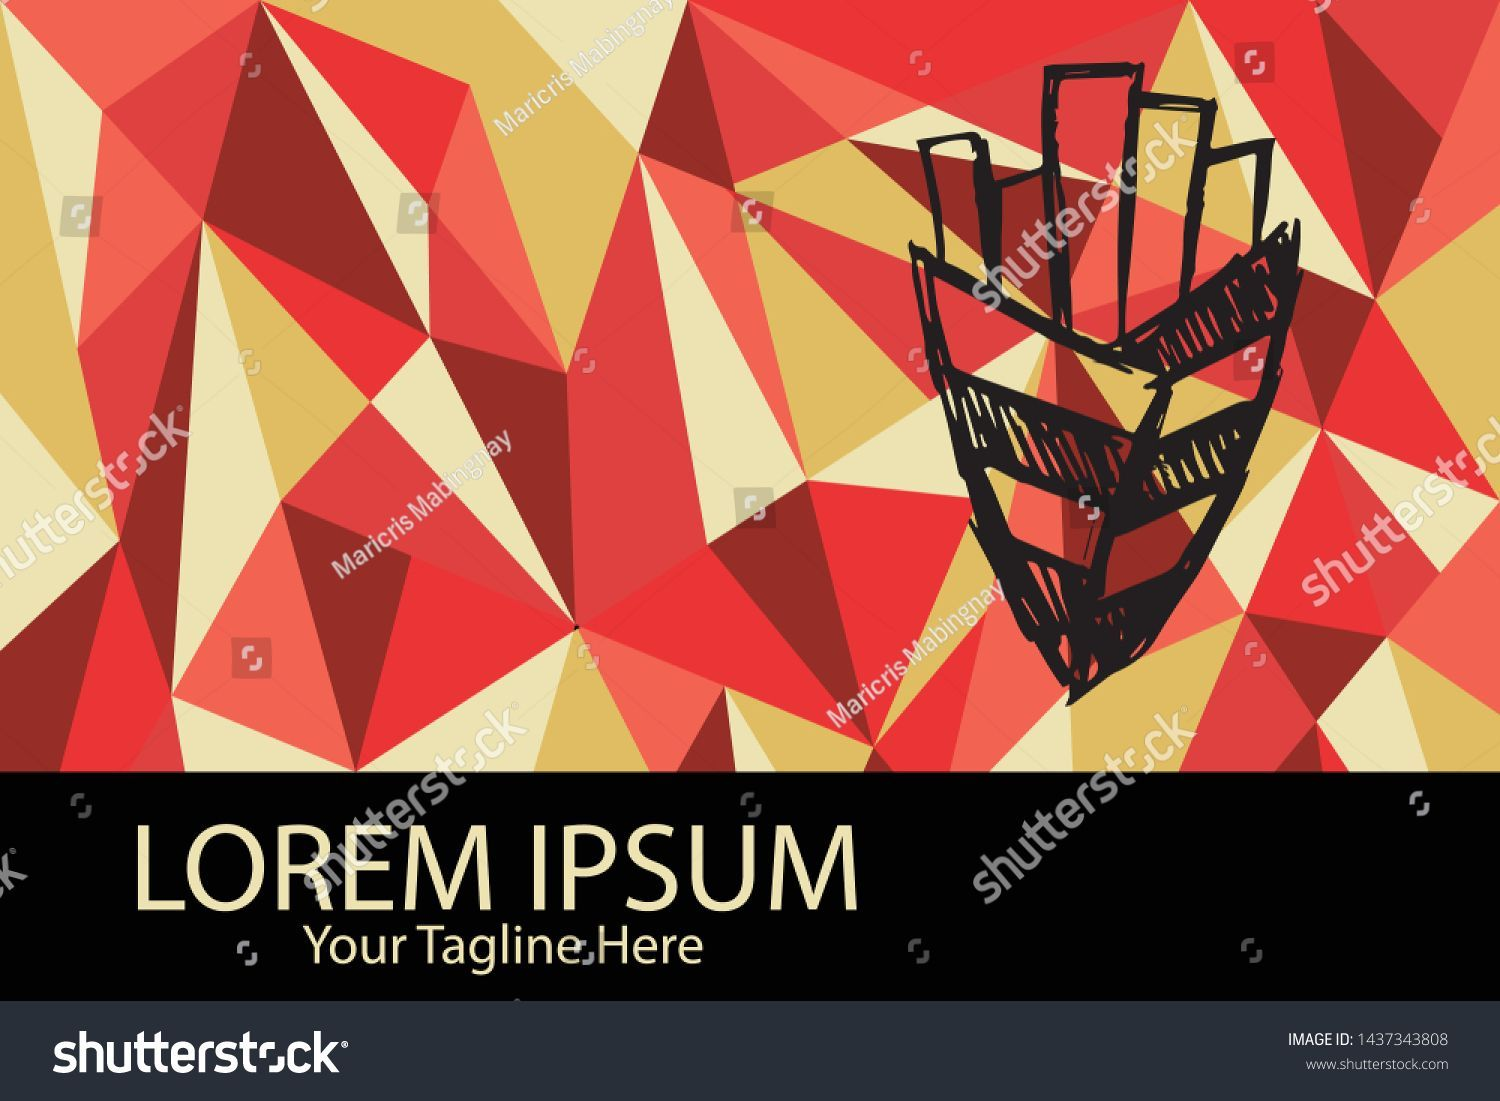 Isolated Vector Illustration Red and Yellow Polygon Geometric of French Fries Fo  Isolated Vector Illustration Red and Yellow Polygon Geometric of French Fries Food Flat...